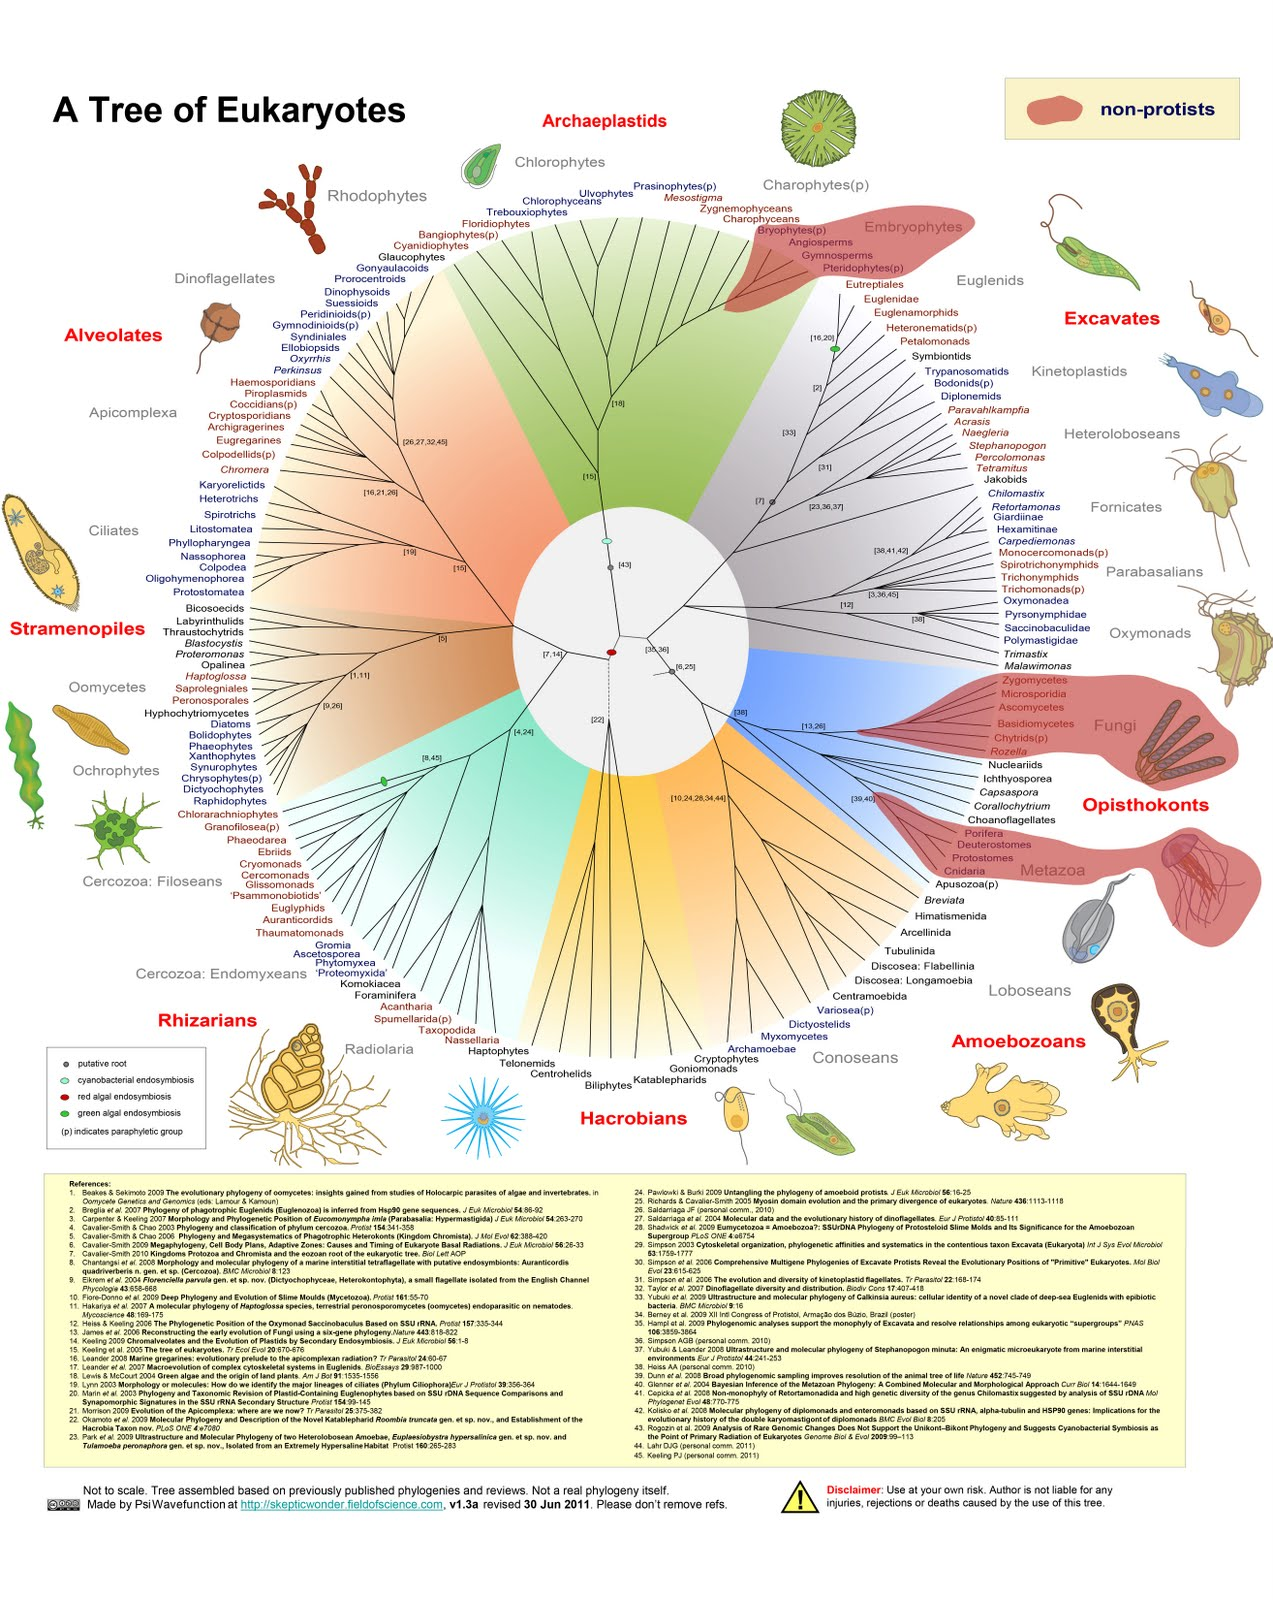 Glimpse of eukaryotic diversity: dominated by protists